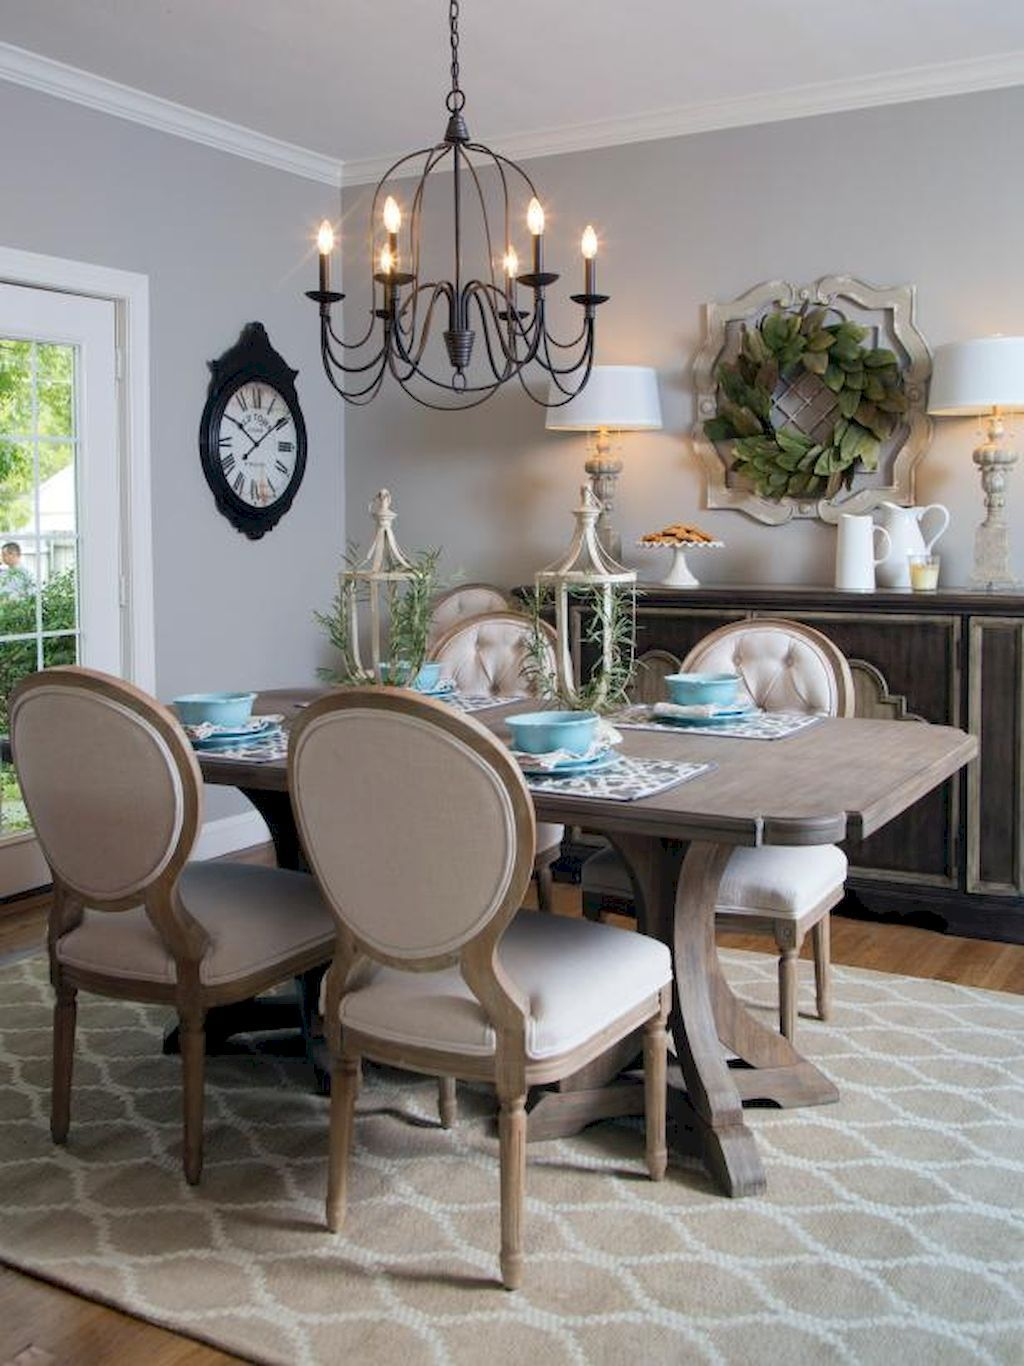 Pin By Karen Keeffe On French Country Style Dining Room Rooms